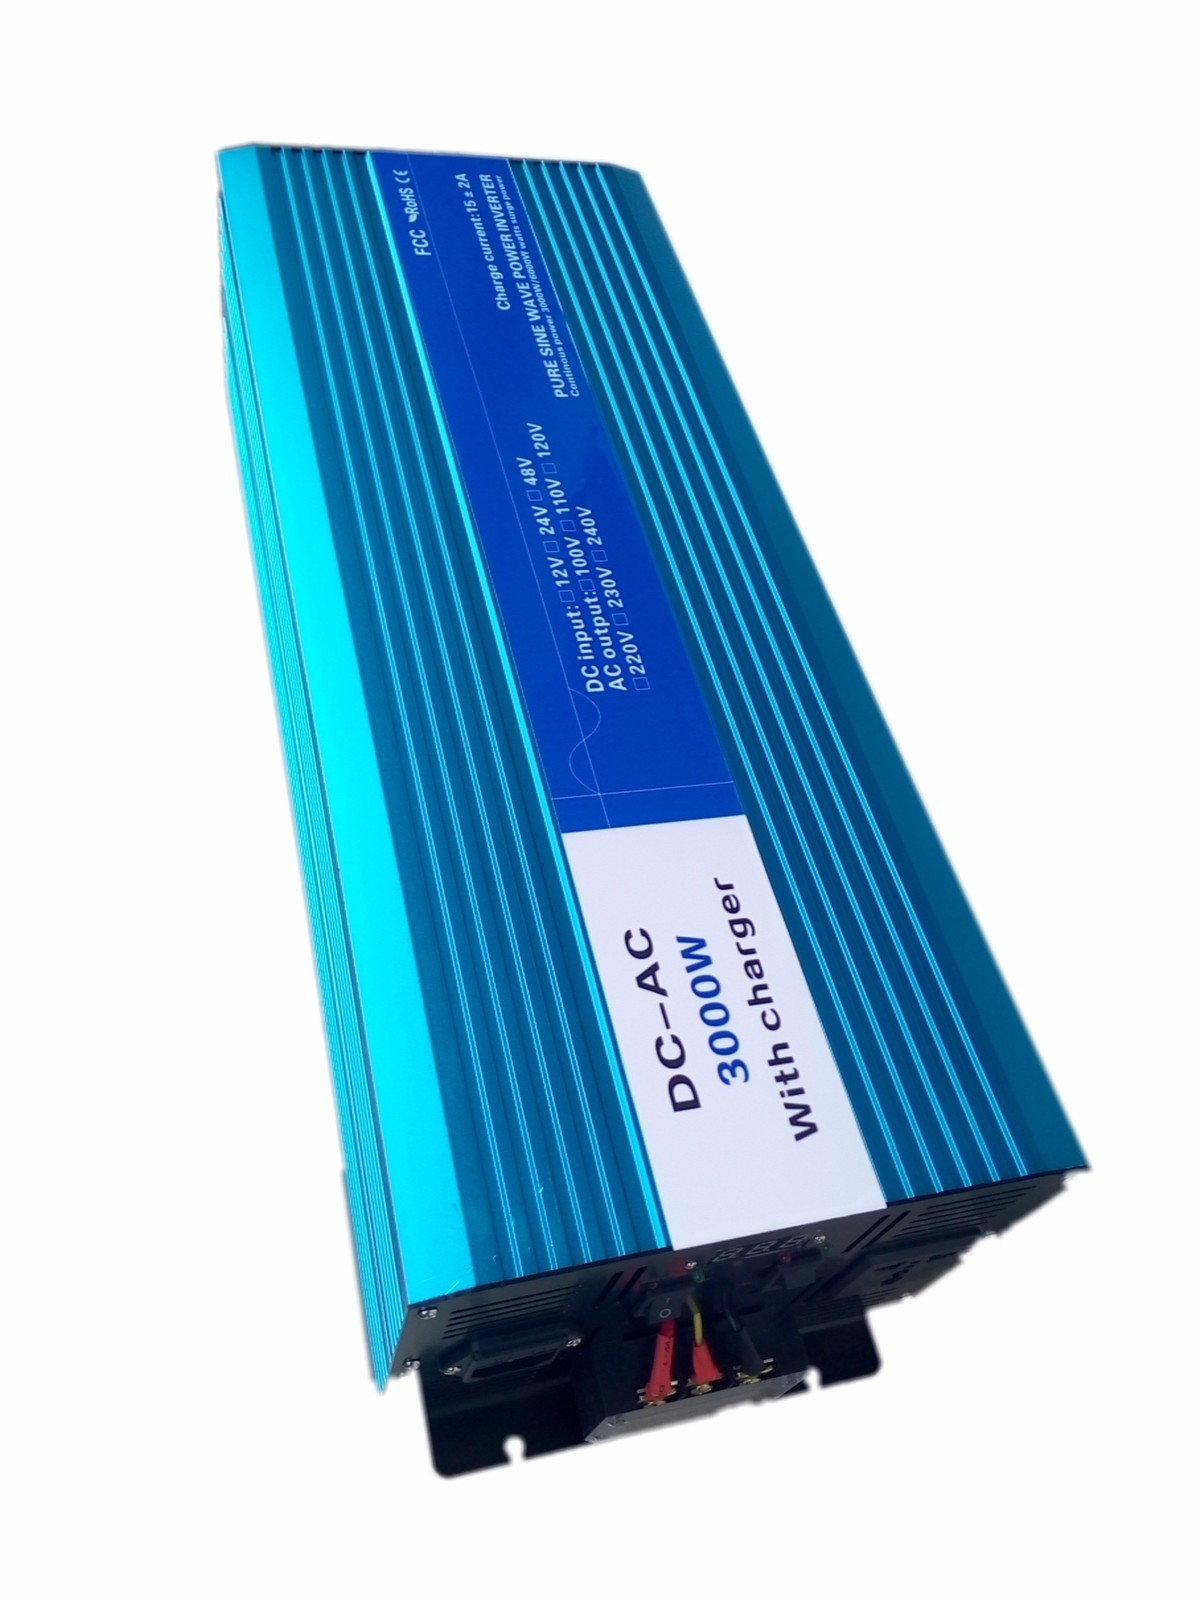 3000W Pure Sine Wave Inverter,DC 12V/24V/48V To AC 110V/220V,off Grid Solar voltage converter With Panel Charger And UPS boguang 110v 220v 300w mini solar inverter 12v dc output for olar panel cable outdoor rv marine car home camping off grid